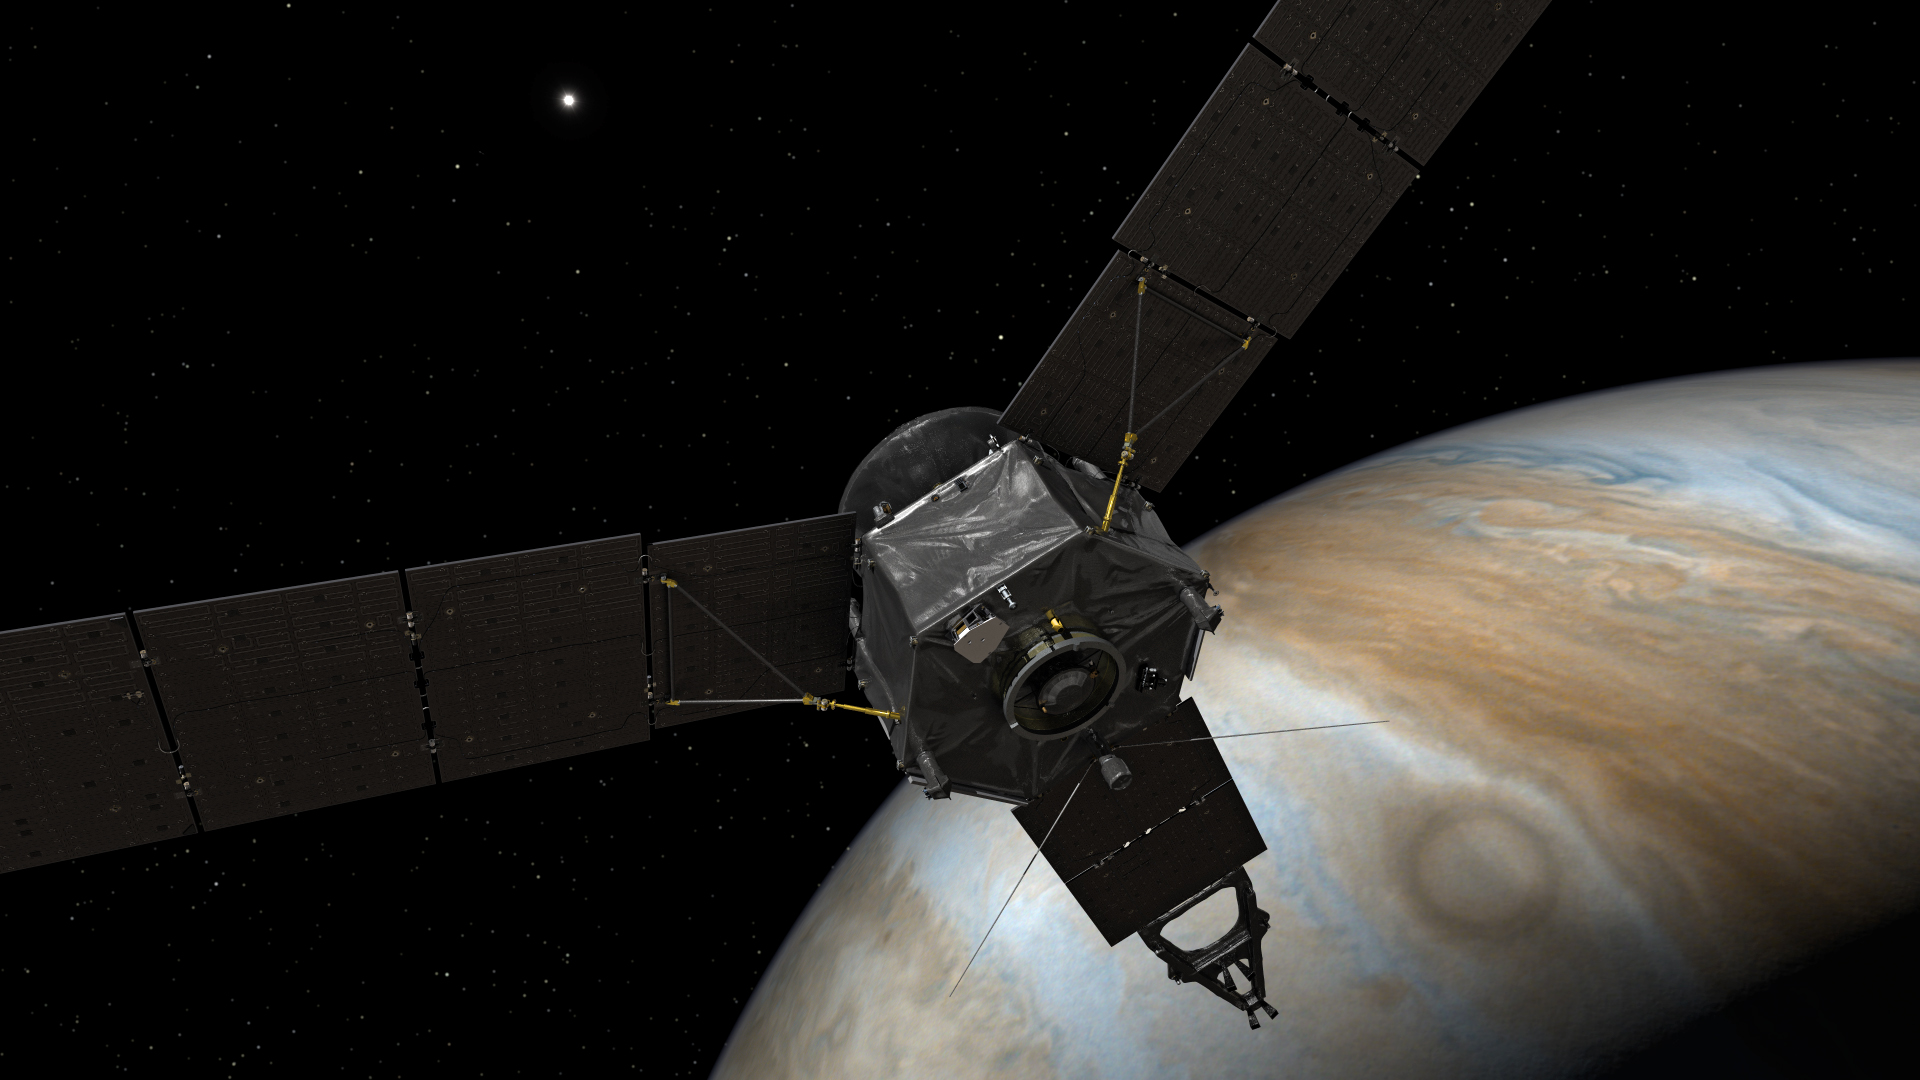 'Built like an armored tank', Juno swoops through debris, radiation in Jupiter's upper atmosphere